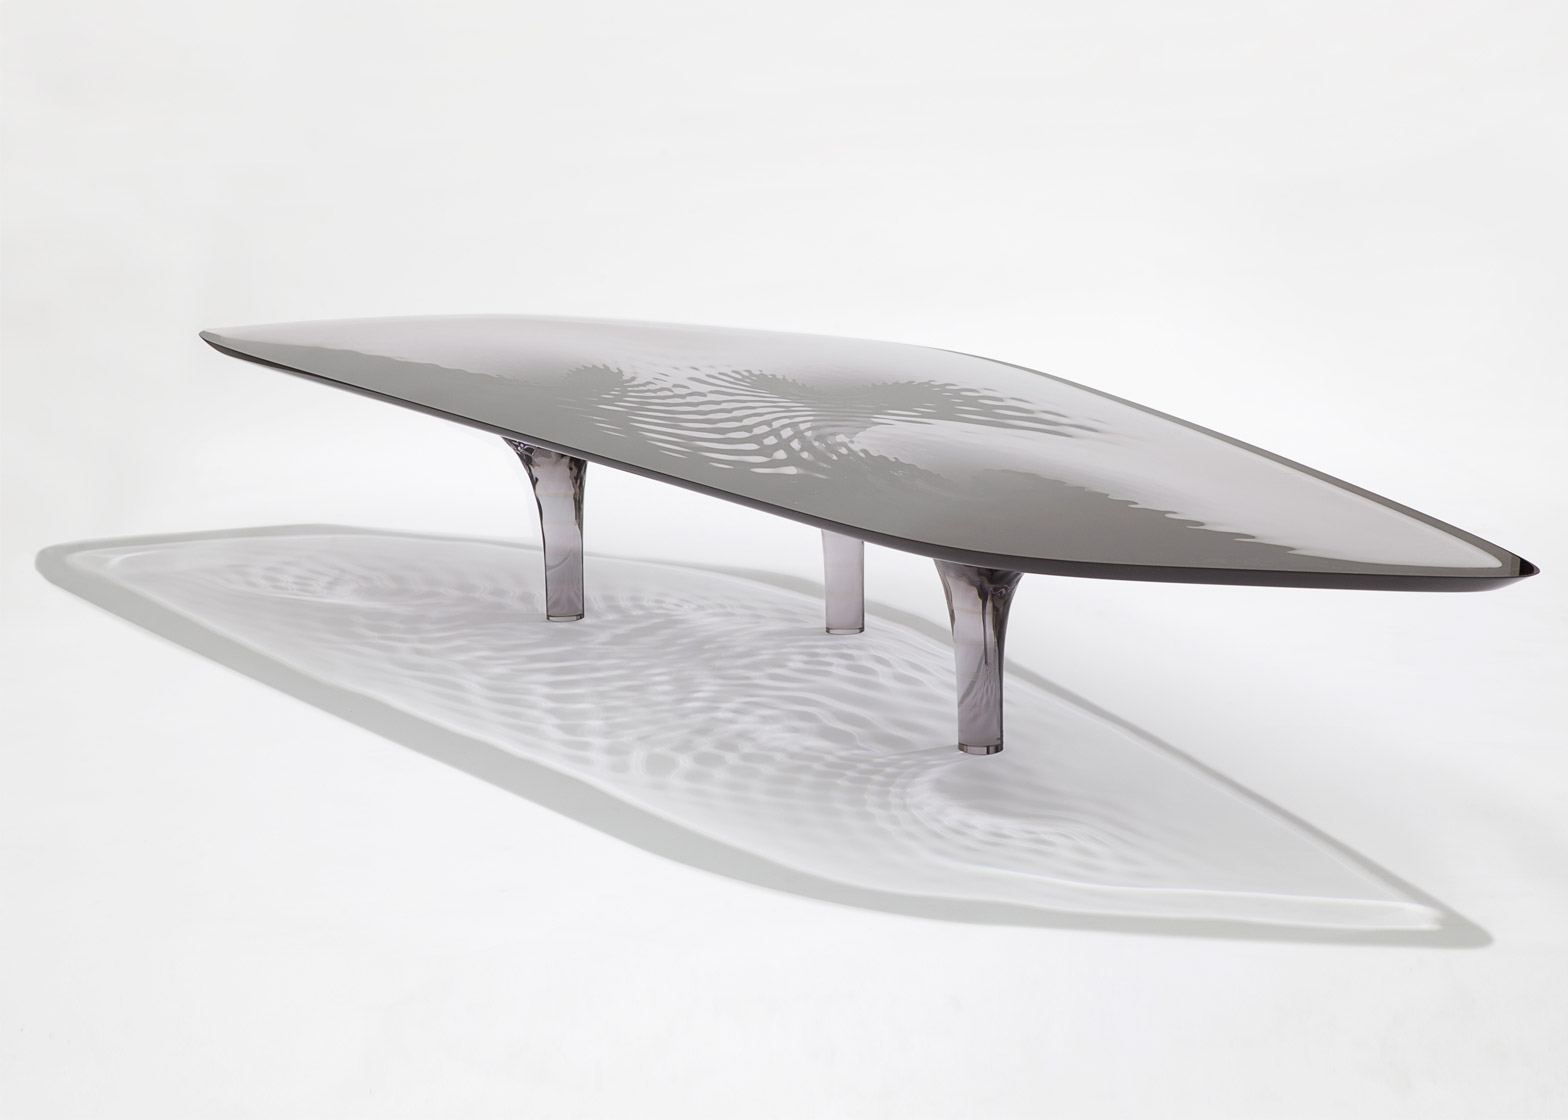 Liquid Glacial cocktail table, 2012, by Zaha Hadid at David Gill Gallery.